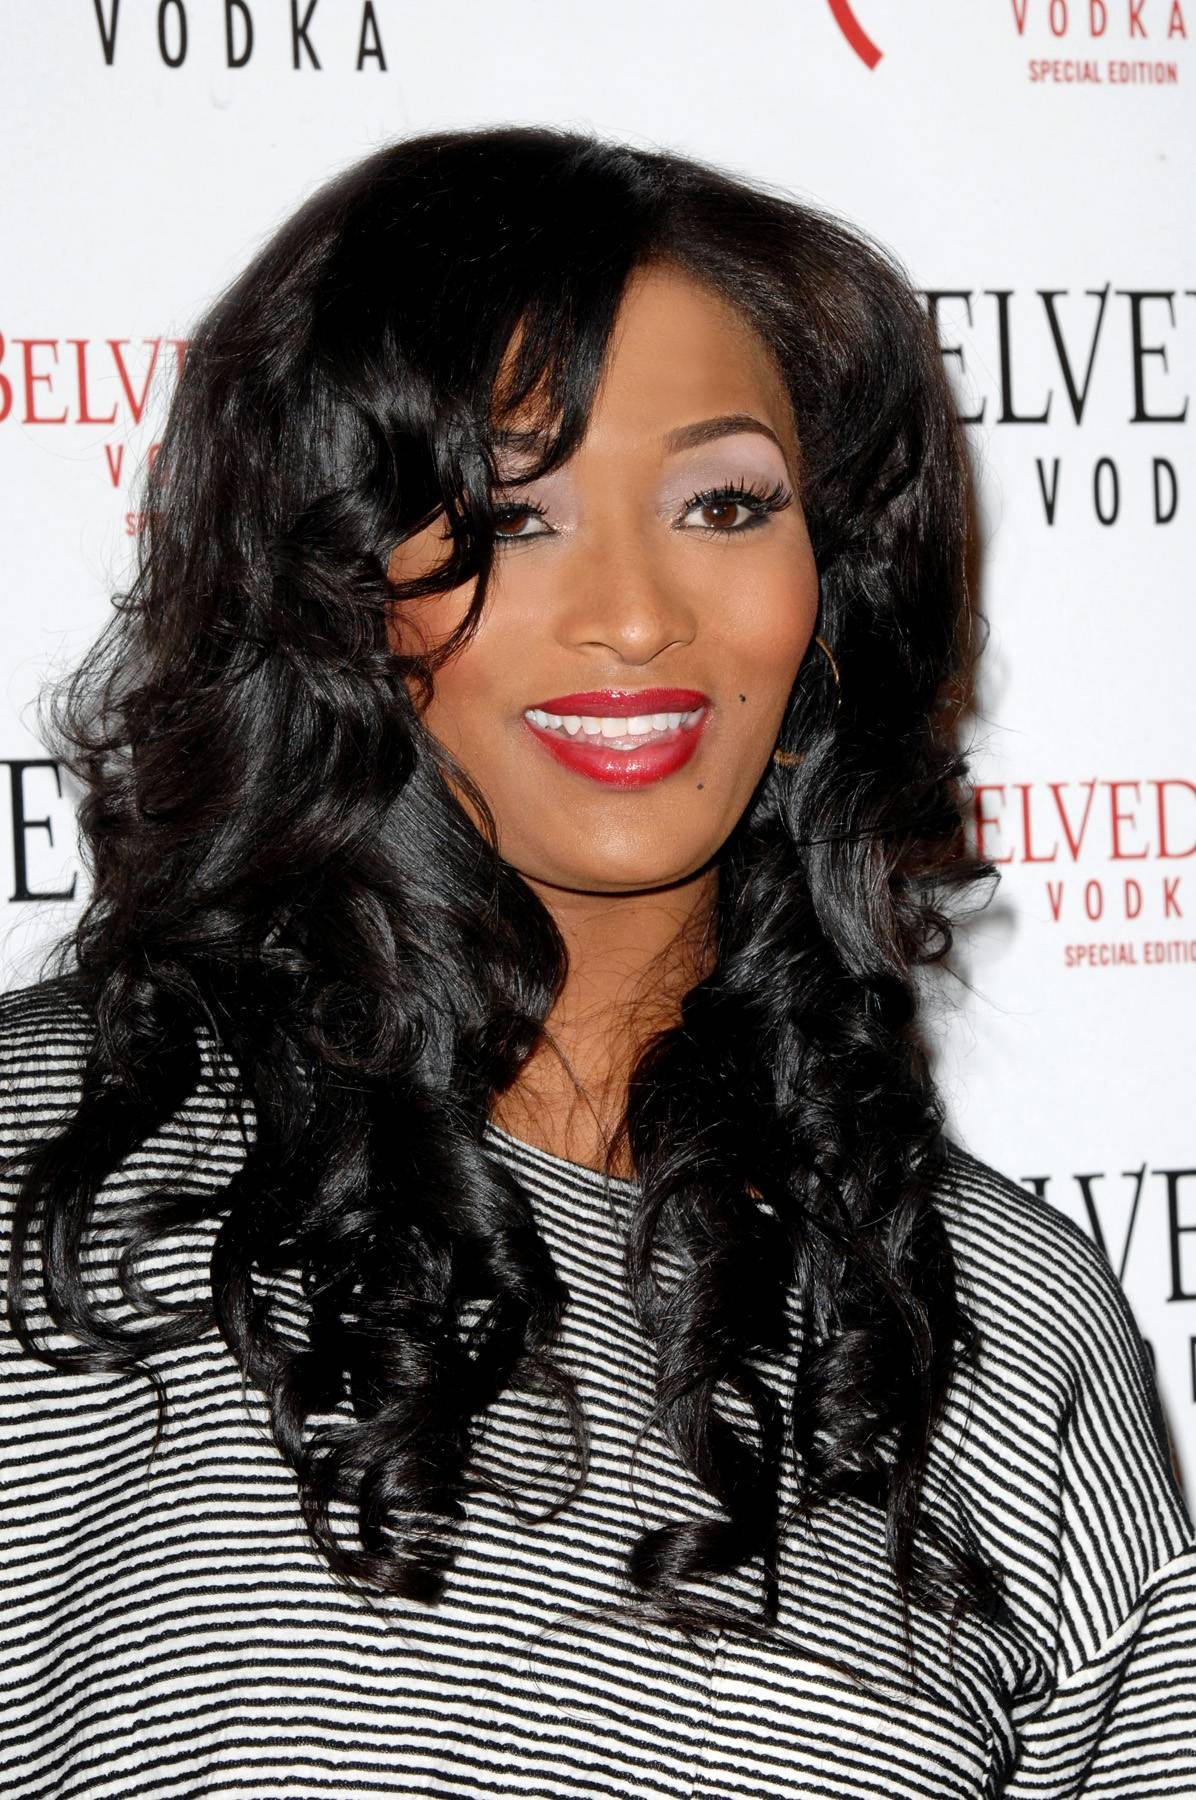 Toccara - Toccara keeps it bold and beautiful. ?It?s hard for us brown girls to find a nice red, but I like TIGI Bed Head Girls Just Want It lipstick in Luxury.?(Photo: Amanda Edwards/Getty Images)